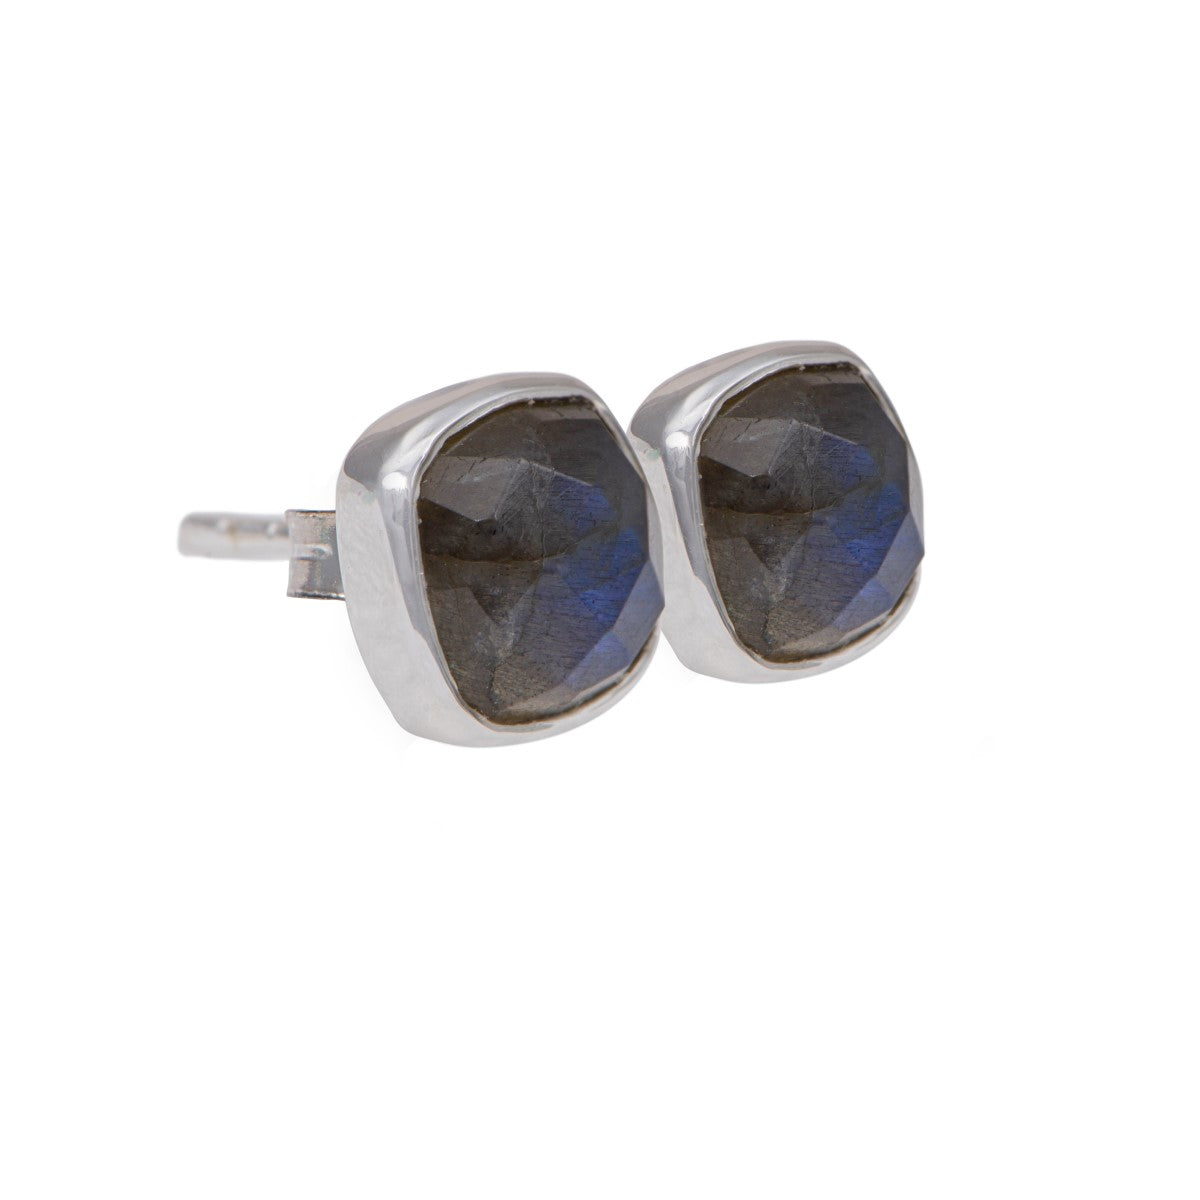 Faceted Square Labradorite Gemstone Stud Earrings in Sterling Silver